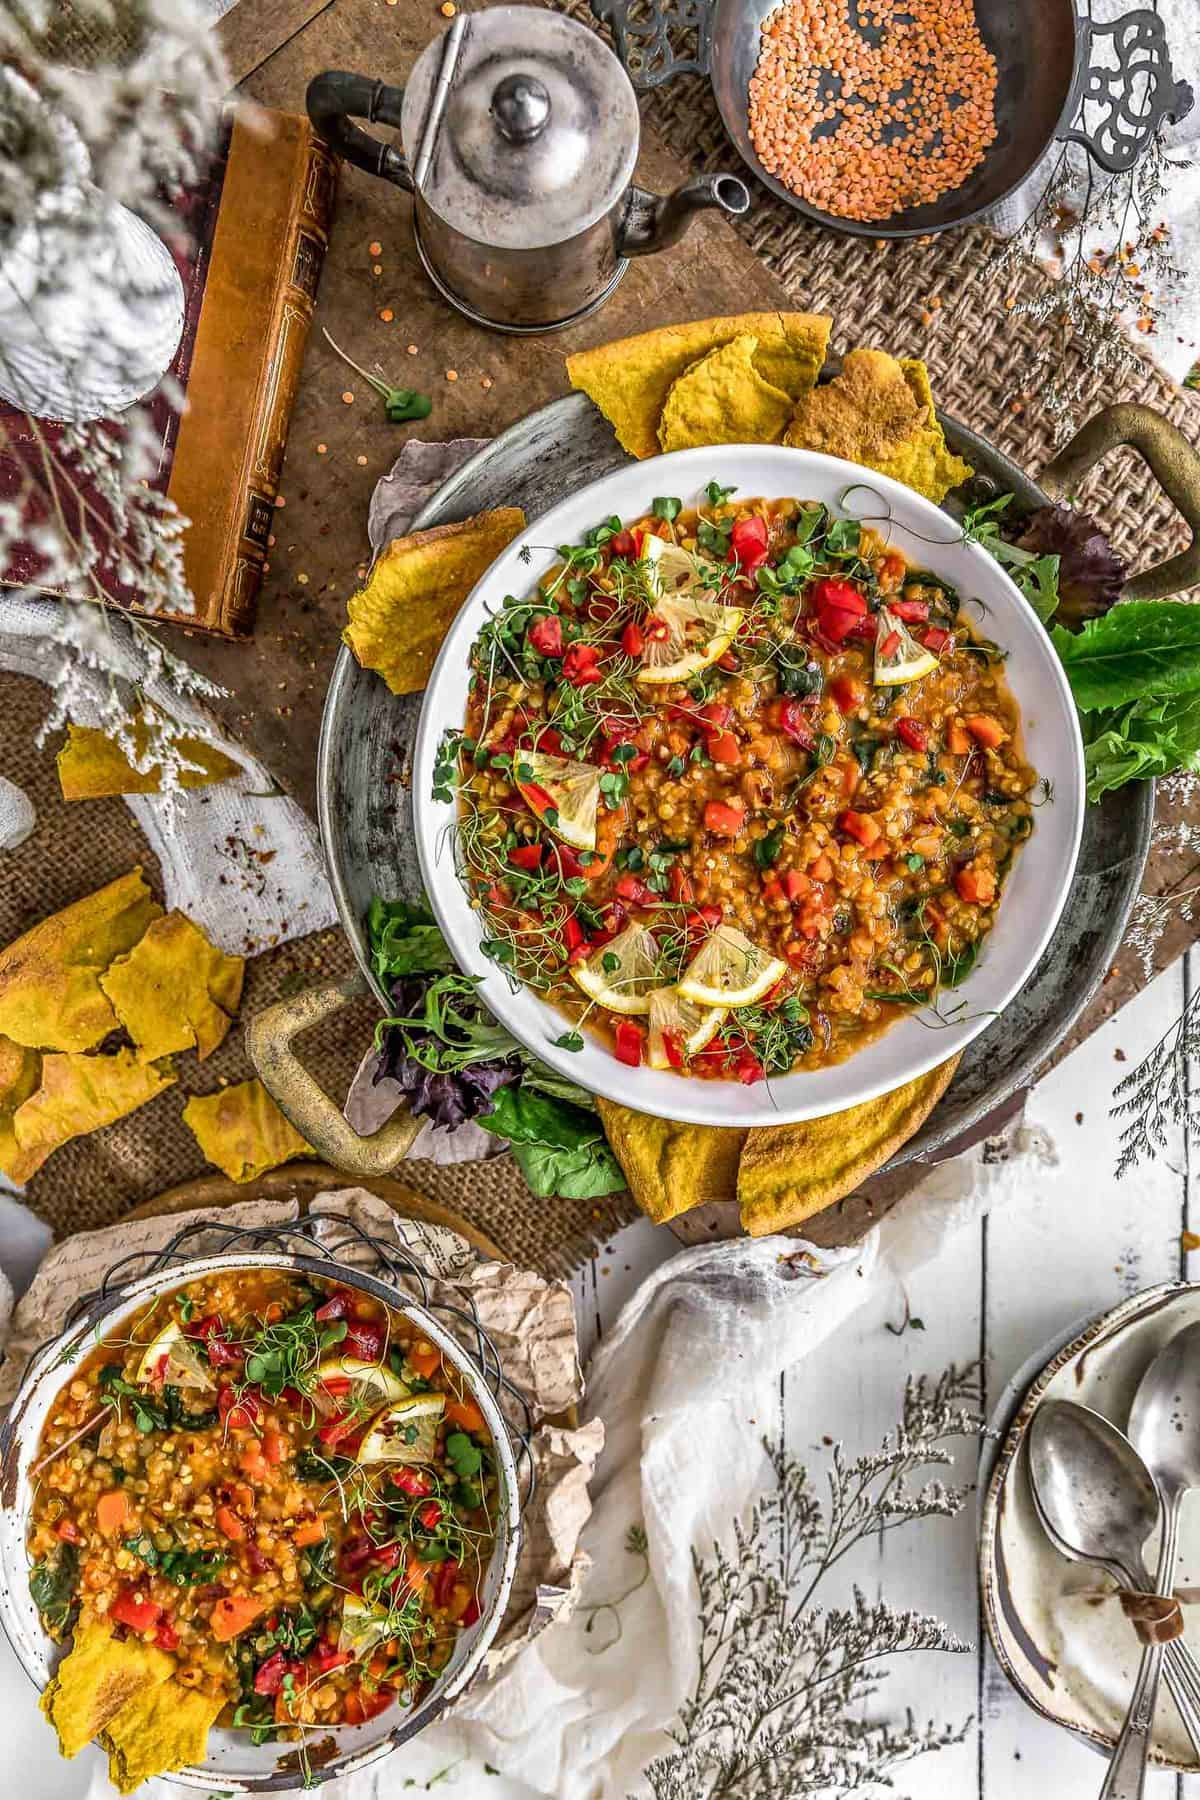 Tablescape of Lemony Red Lentil Spinach Stew